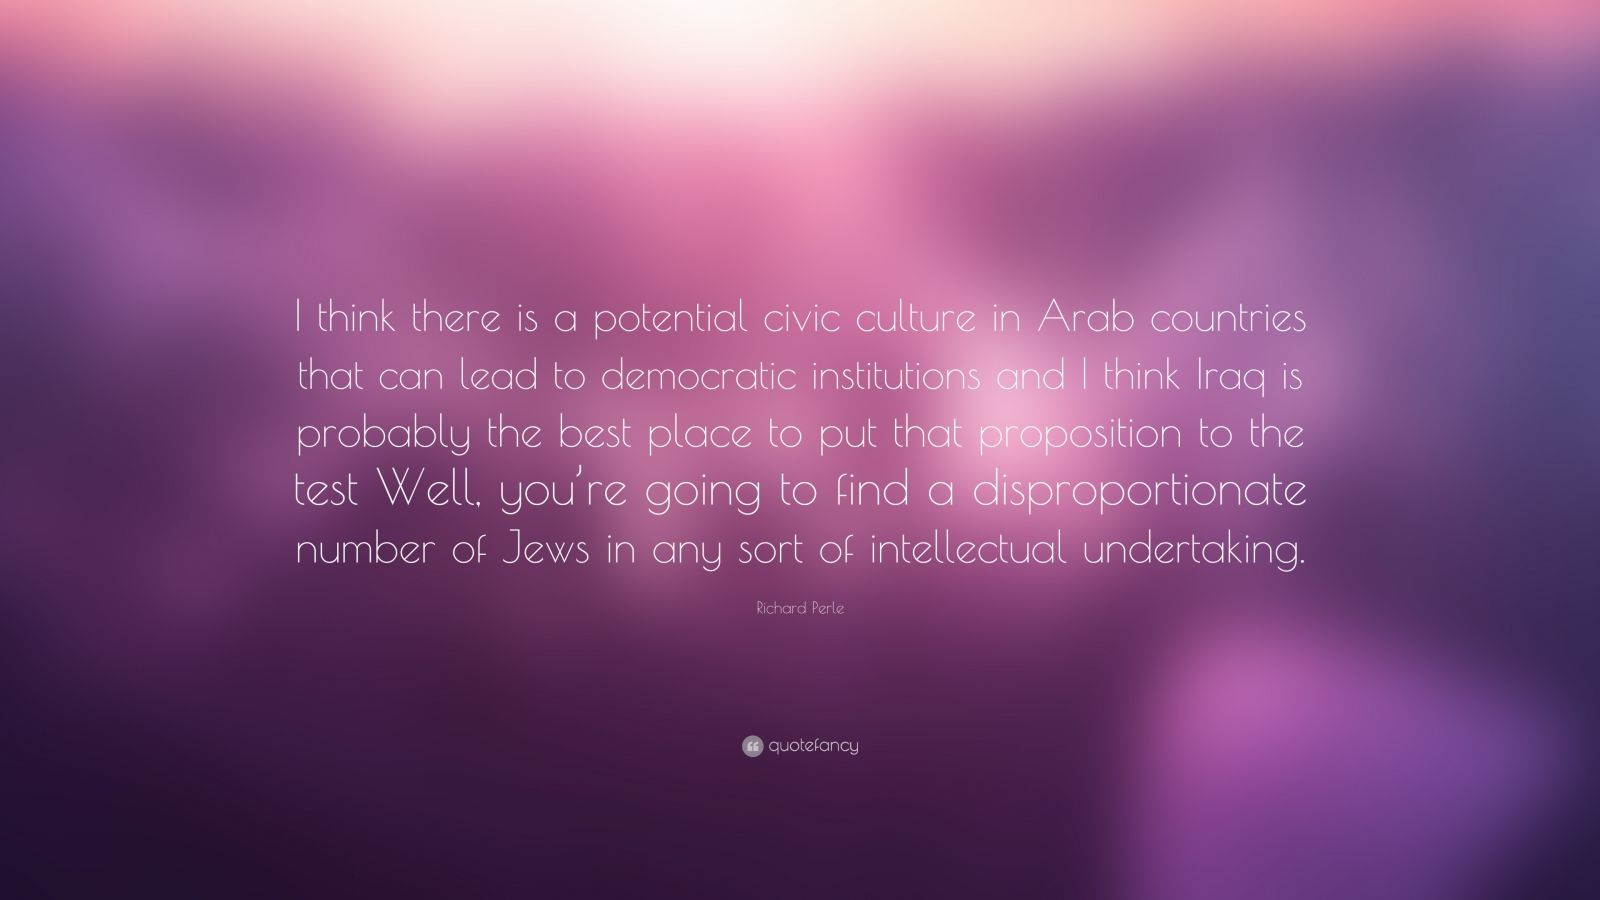 "Richard Perle Quote: ""I think there is a potential civic culture in Arab countries that can lead to democratic institutions and I think Iraq is probably the best place to put that proposition to the test Well, you're going to find a disproportionate number of Jews in any sort of intellectual undertaking."""